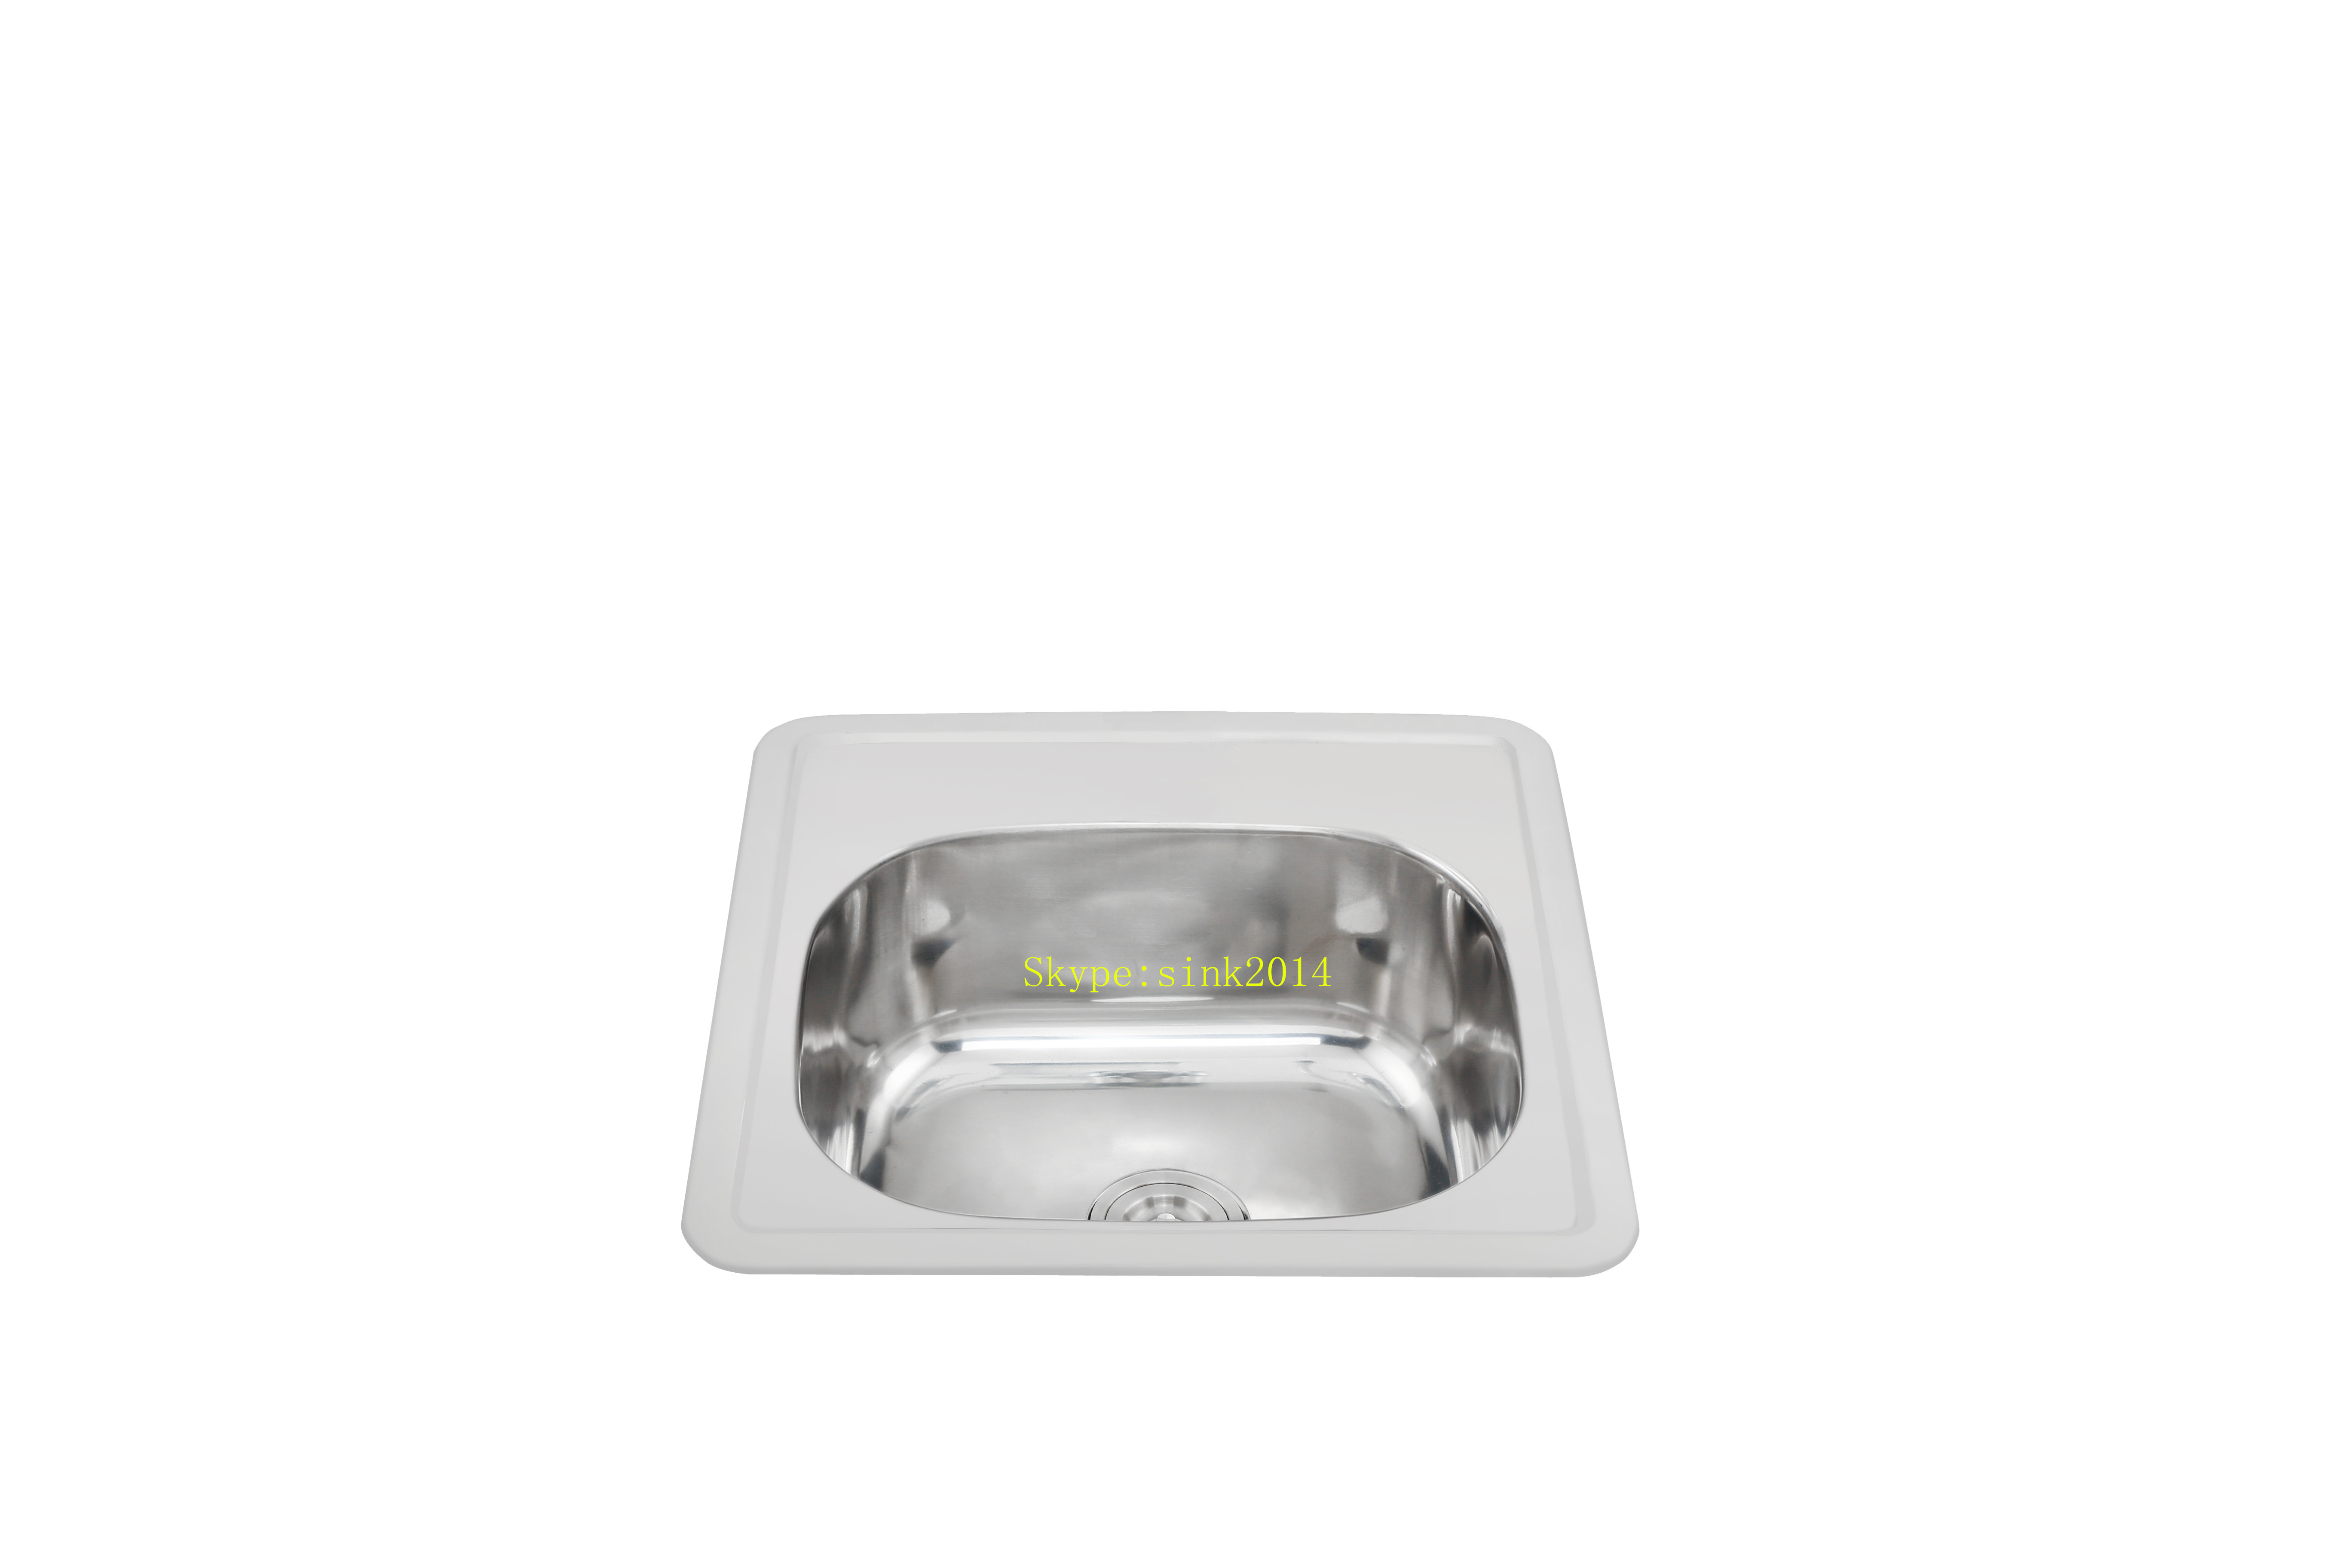 China Factory Suppy Stainless Steel Kitchen Sink WY-4848